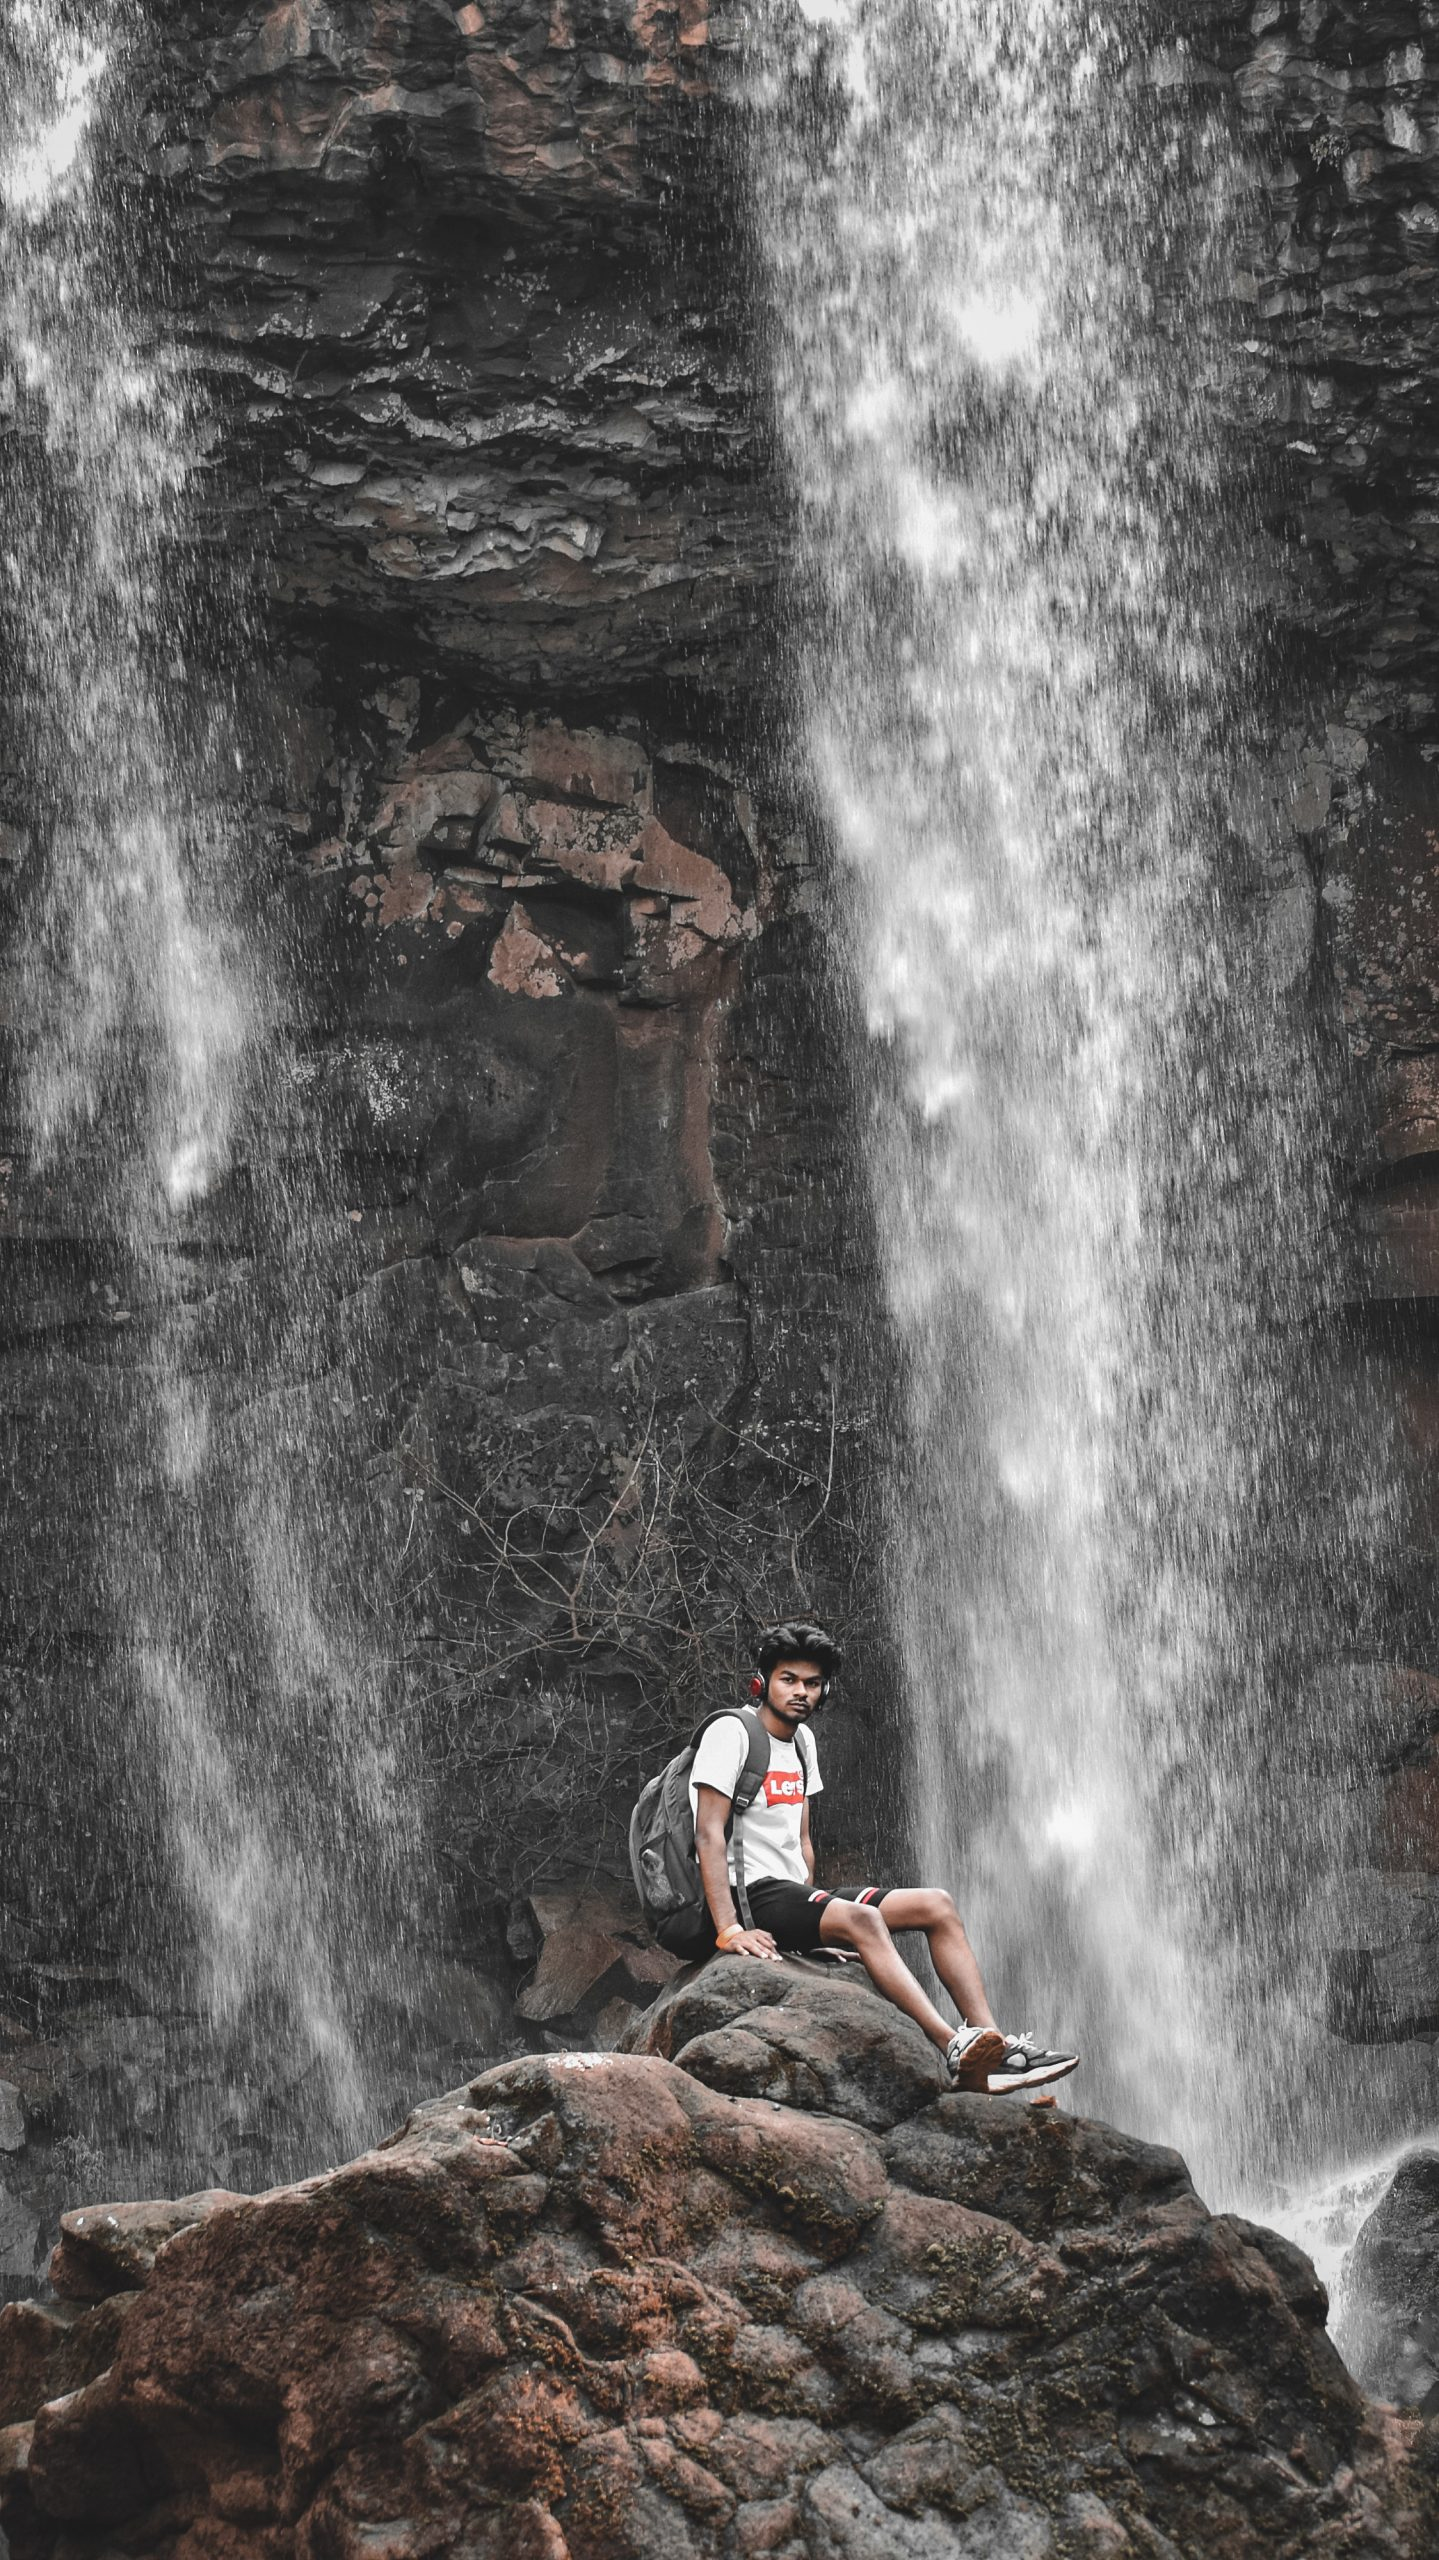 A boy under a waterfall